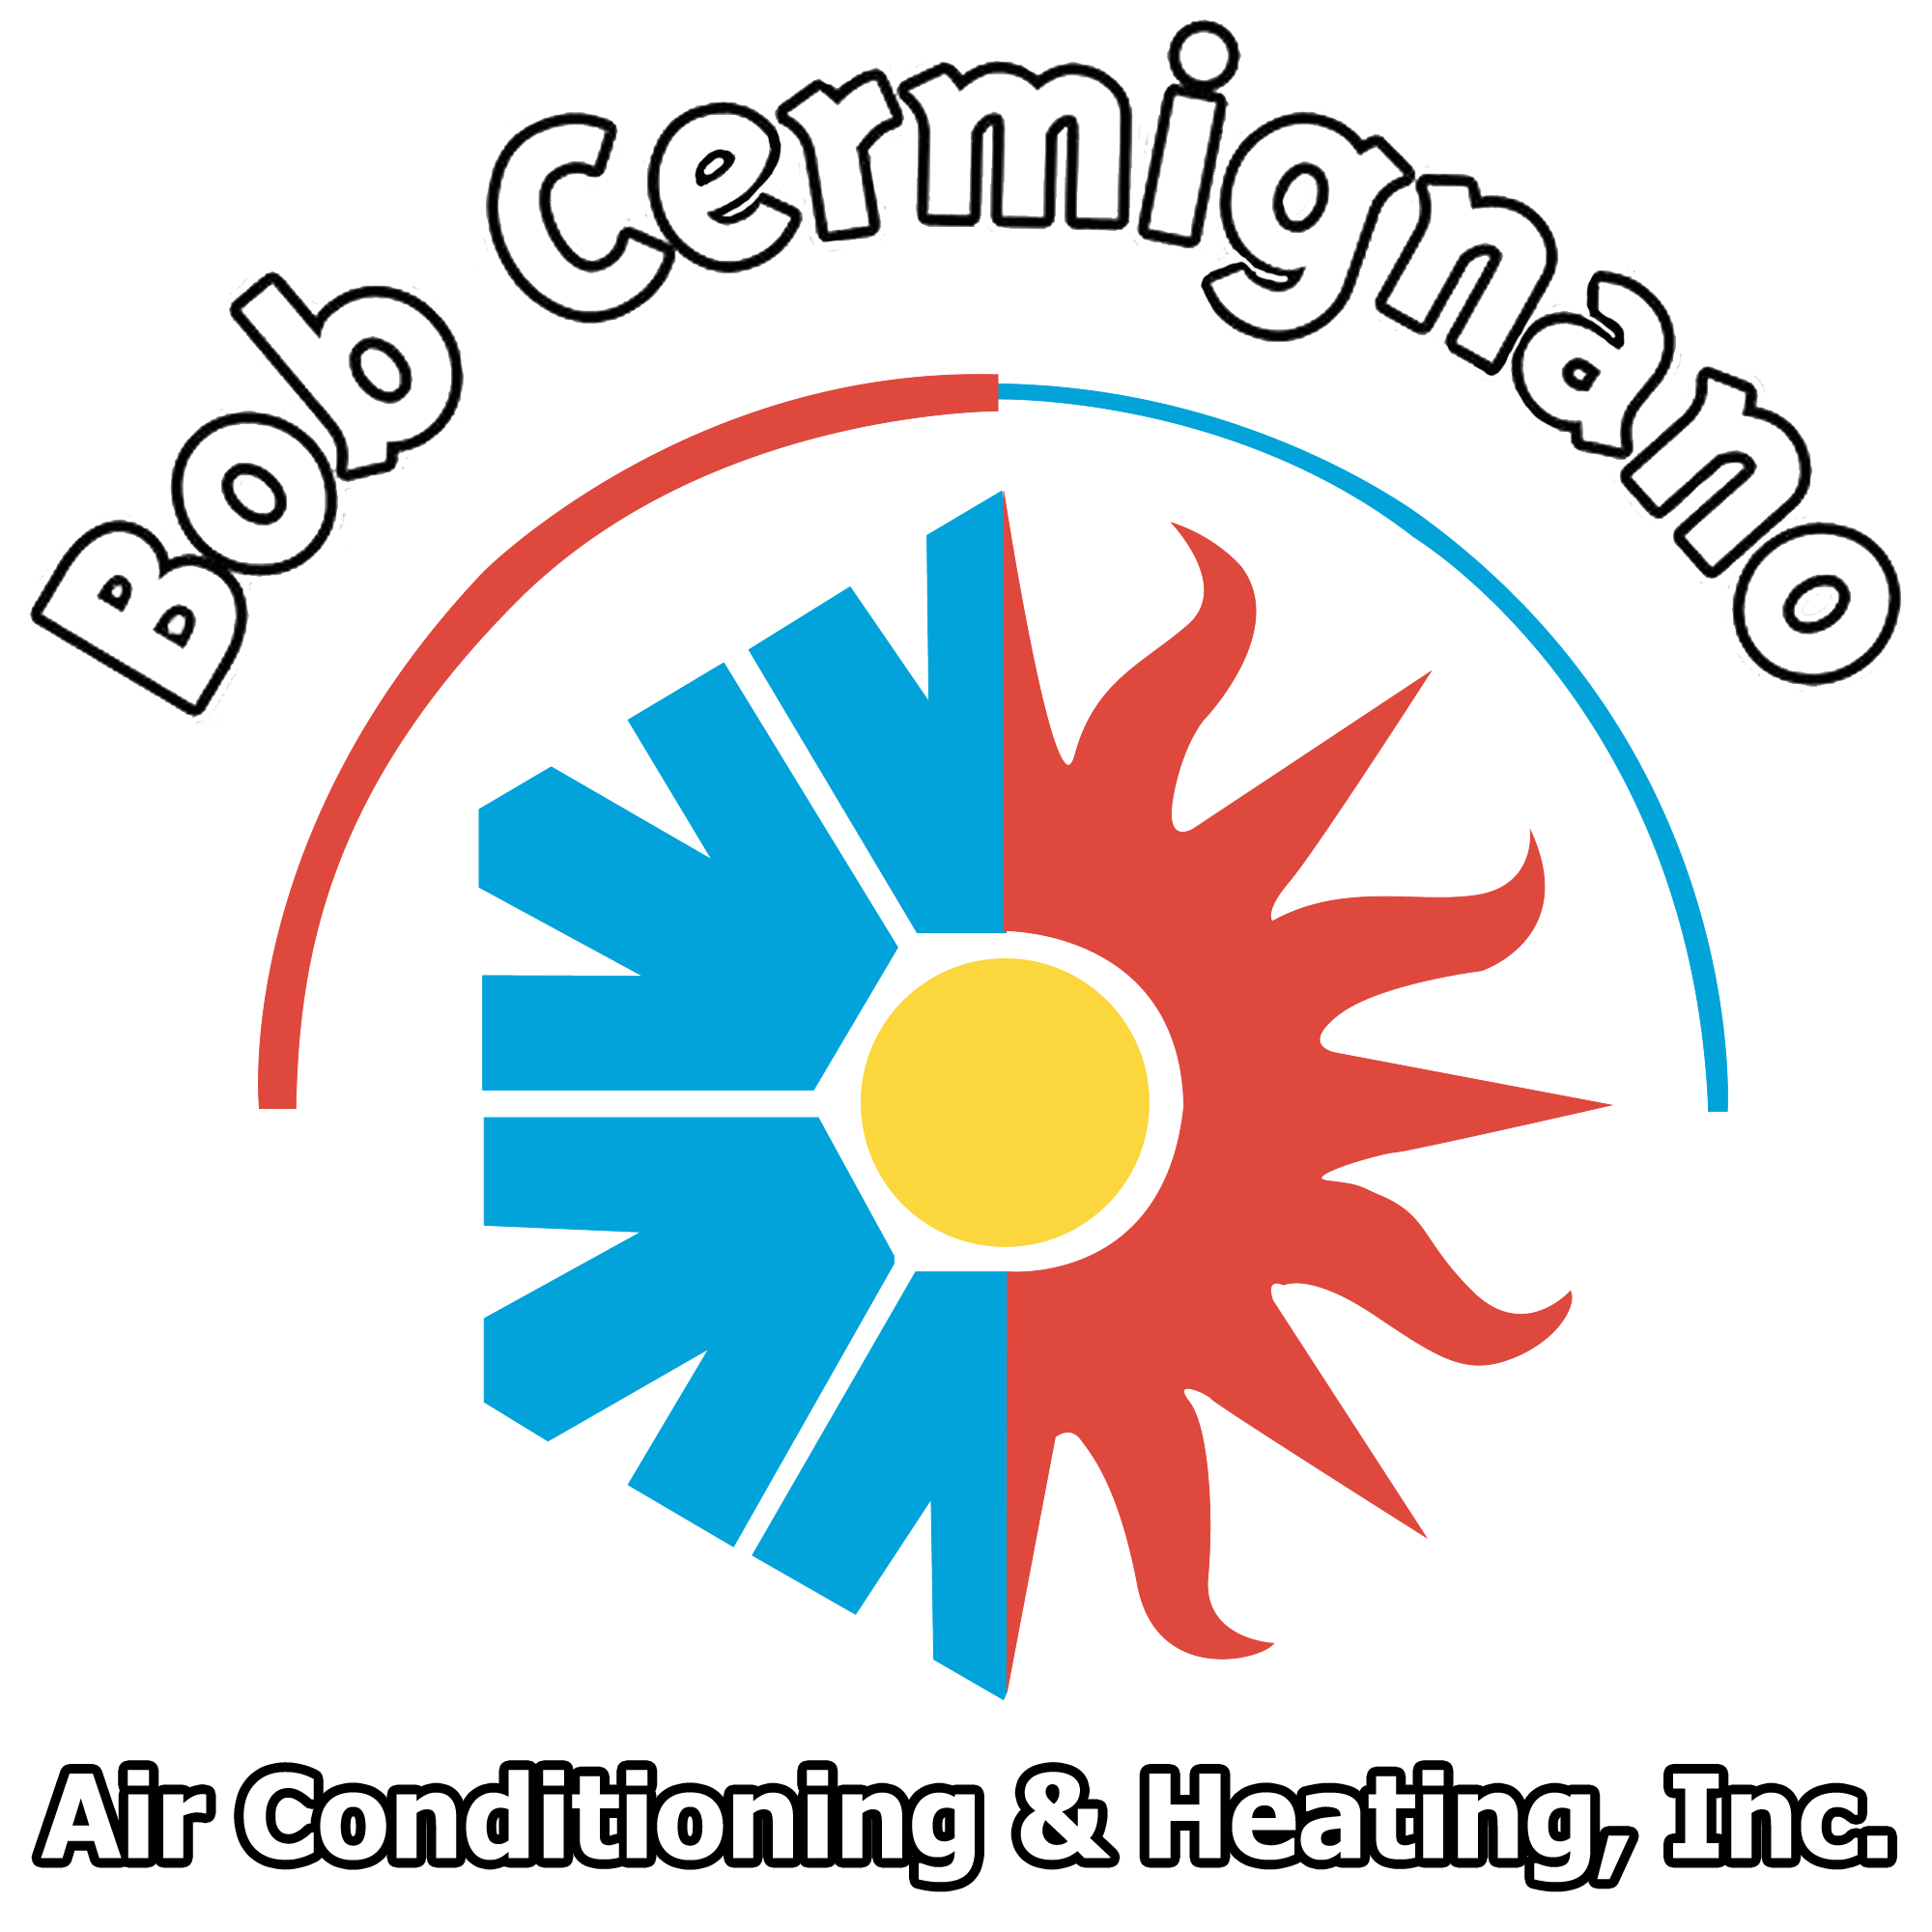 Bob Cermignano Air Conditioning & Heating, Inc.